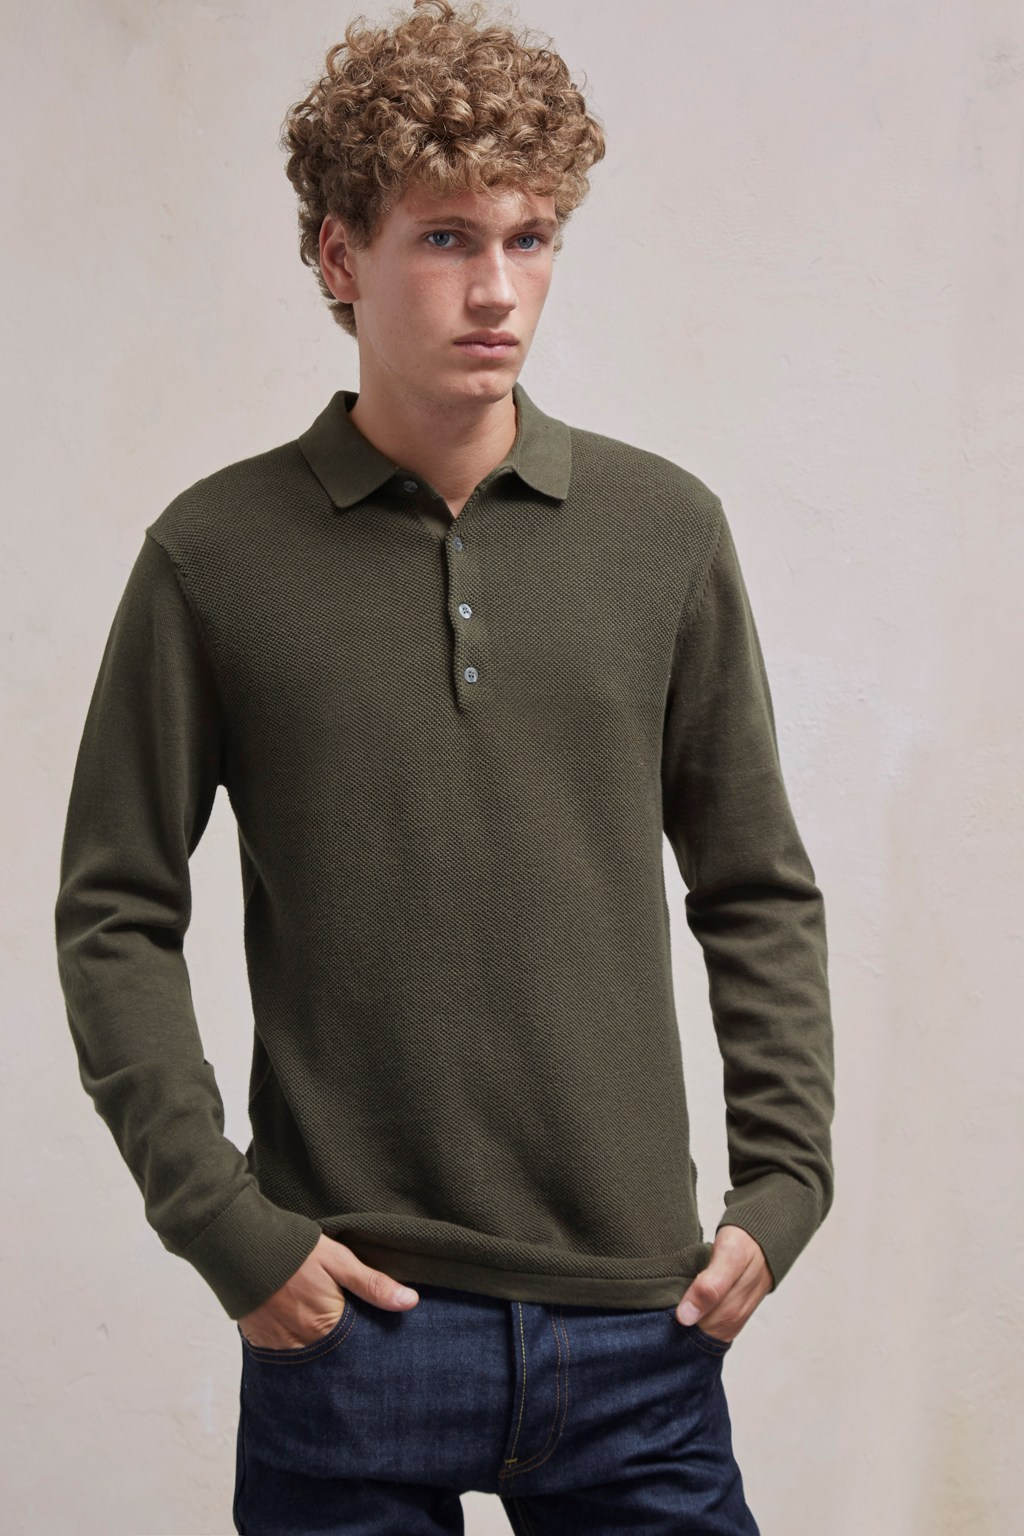 Textured Knit Long Sleeved Polo Shirt. loading images.